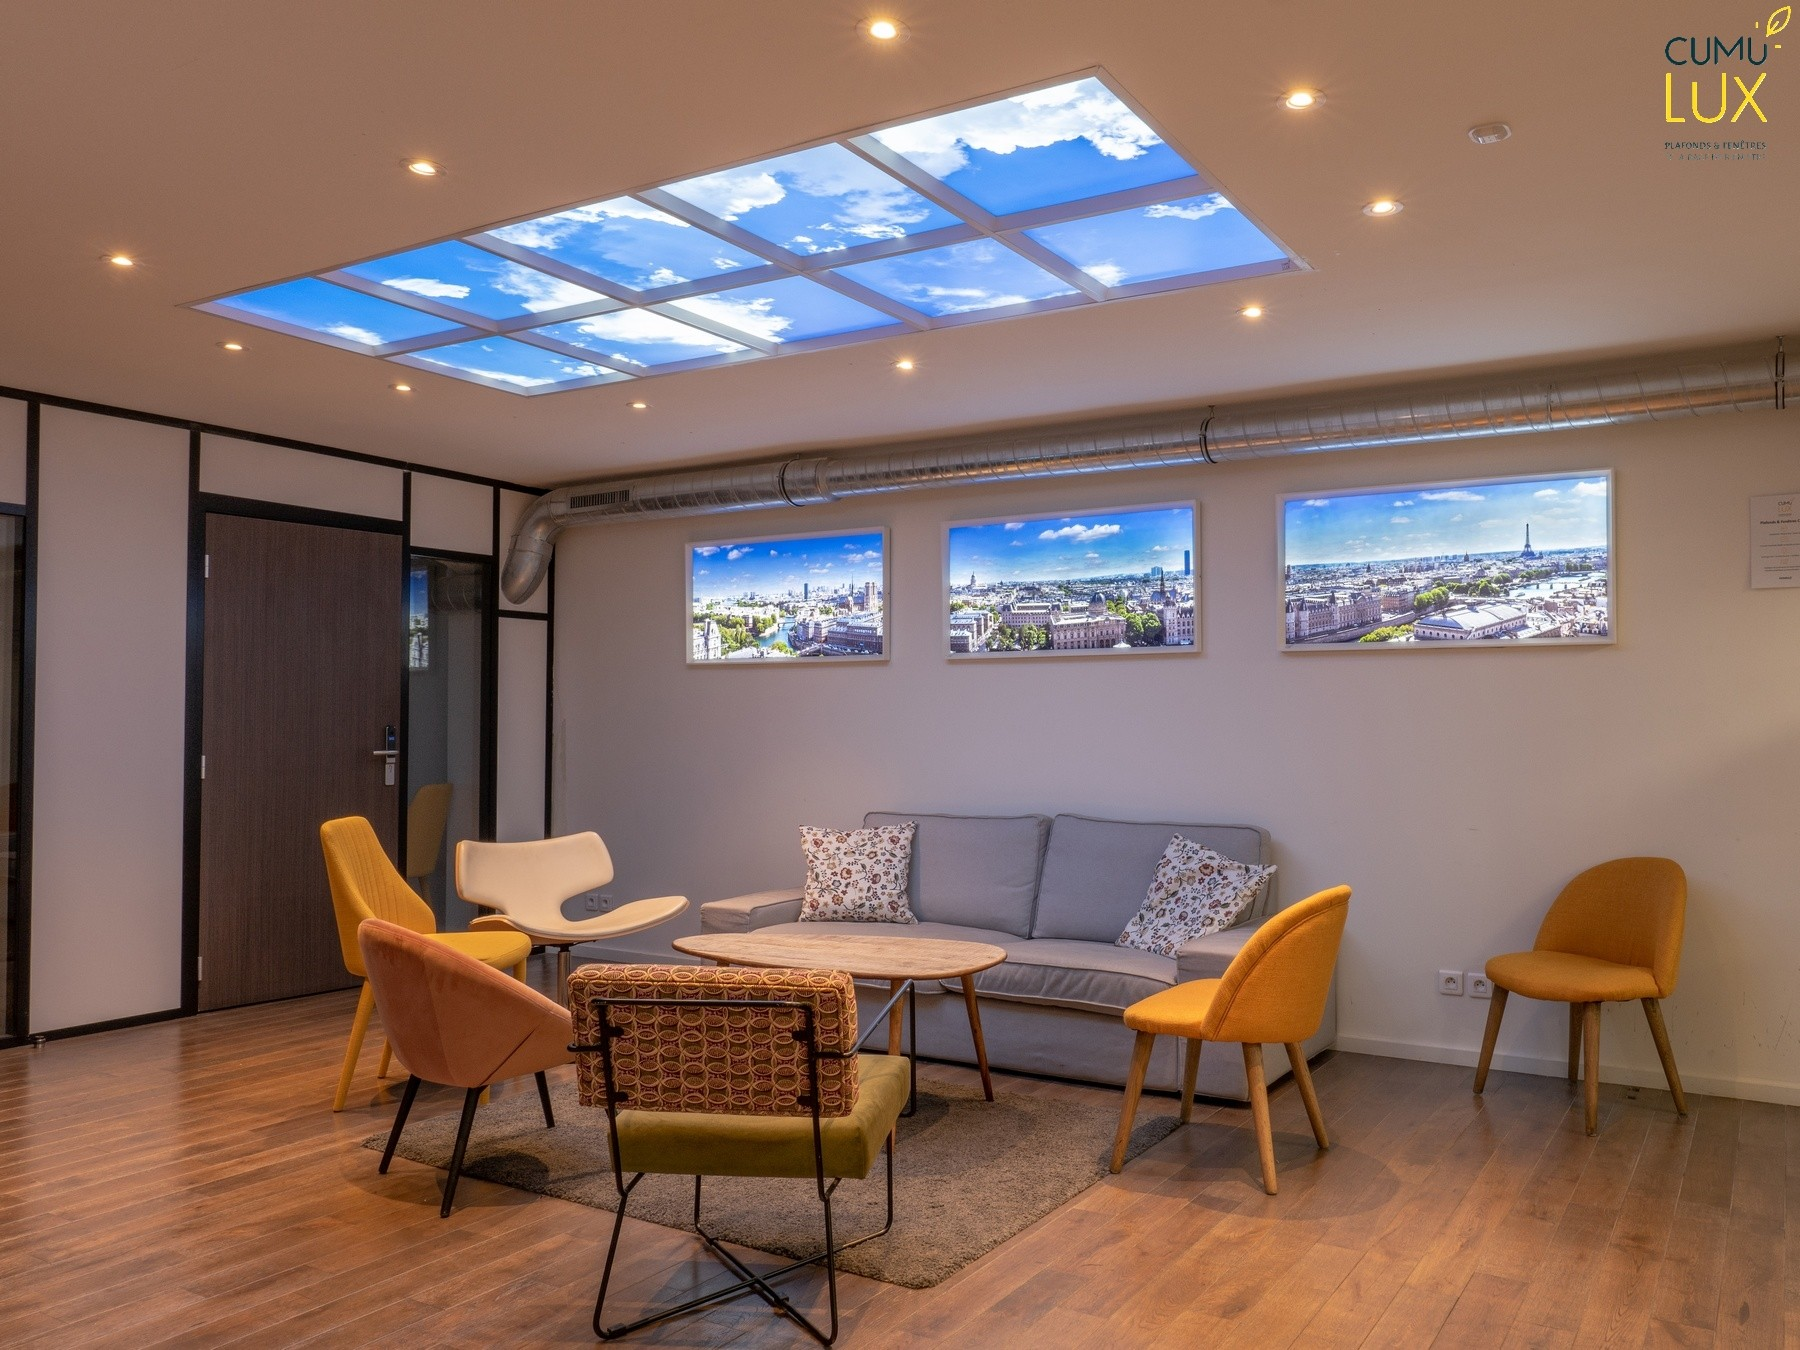 showroom Cumulux - Fausses fenêtres LED